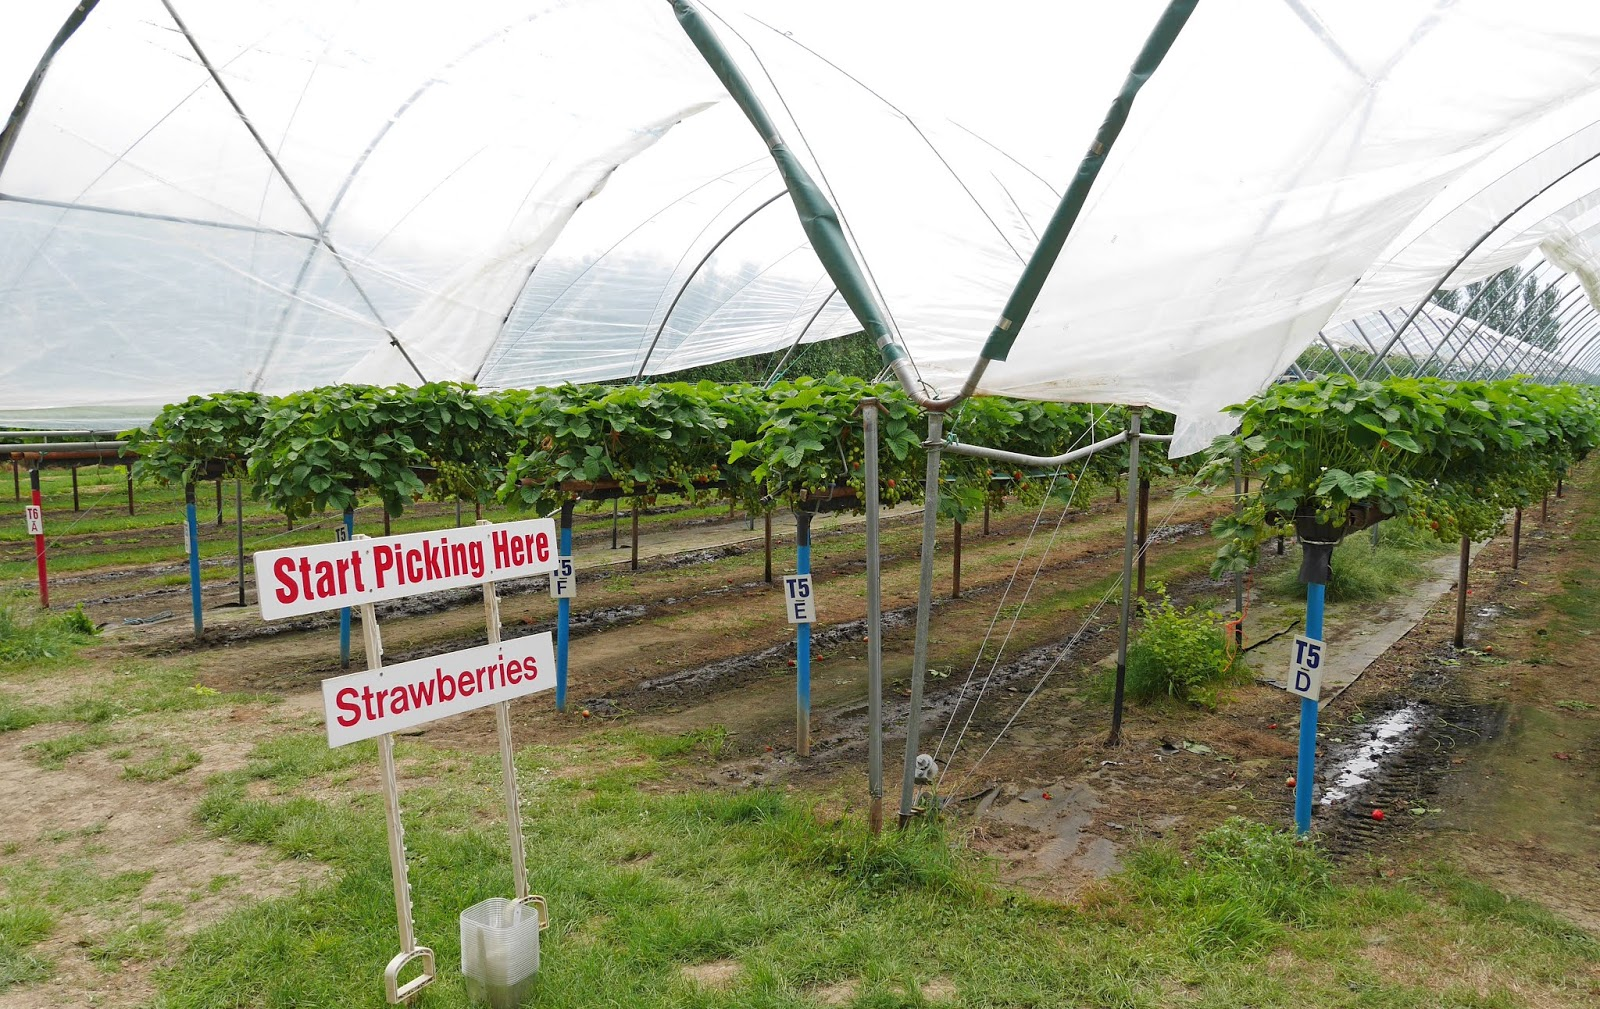 Strawberry plants at Cammas Hall Fruit Farm in Essex